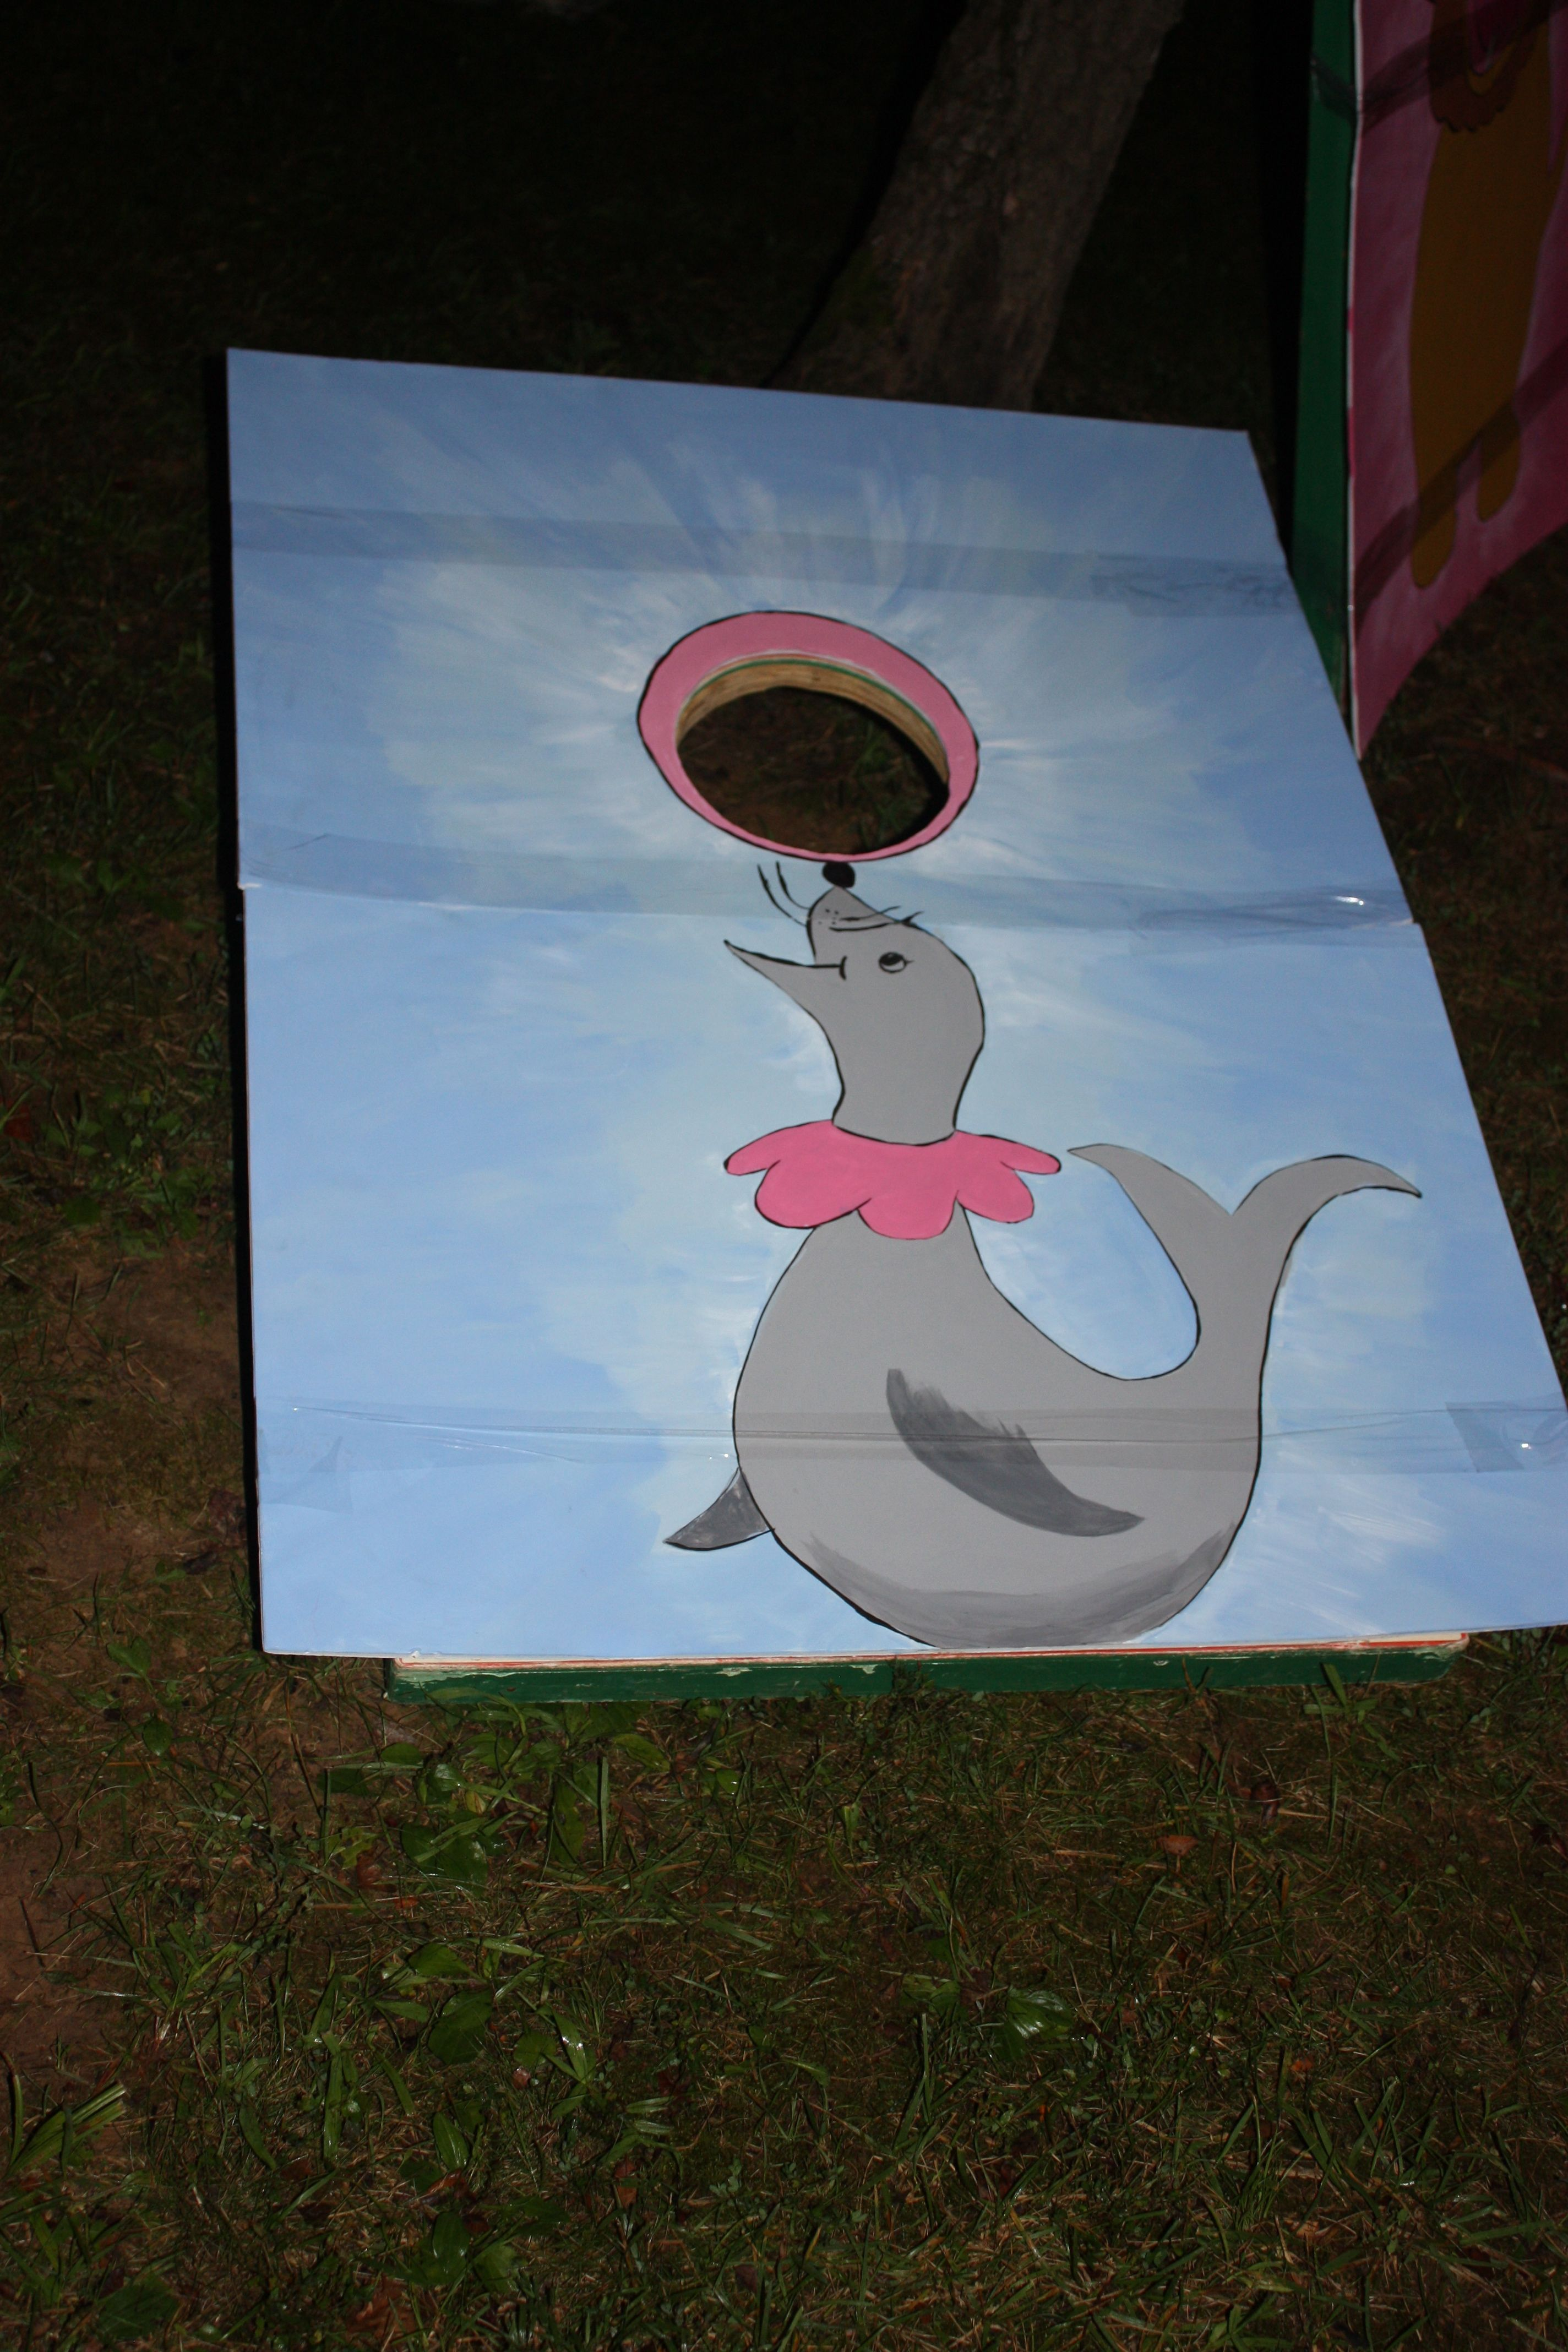 Feed the seal and lion tamer bean bag toss game. artist painted ...